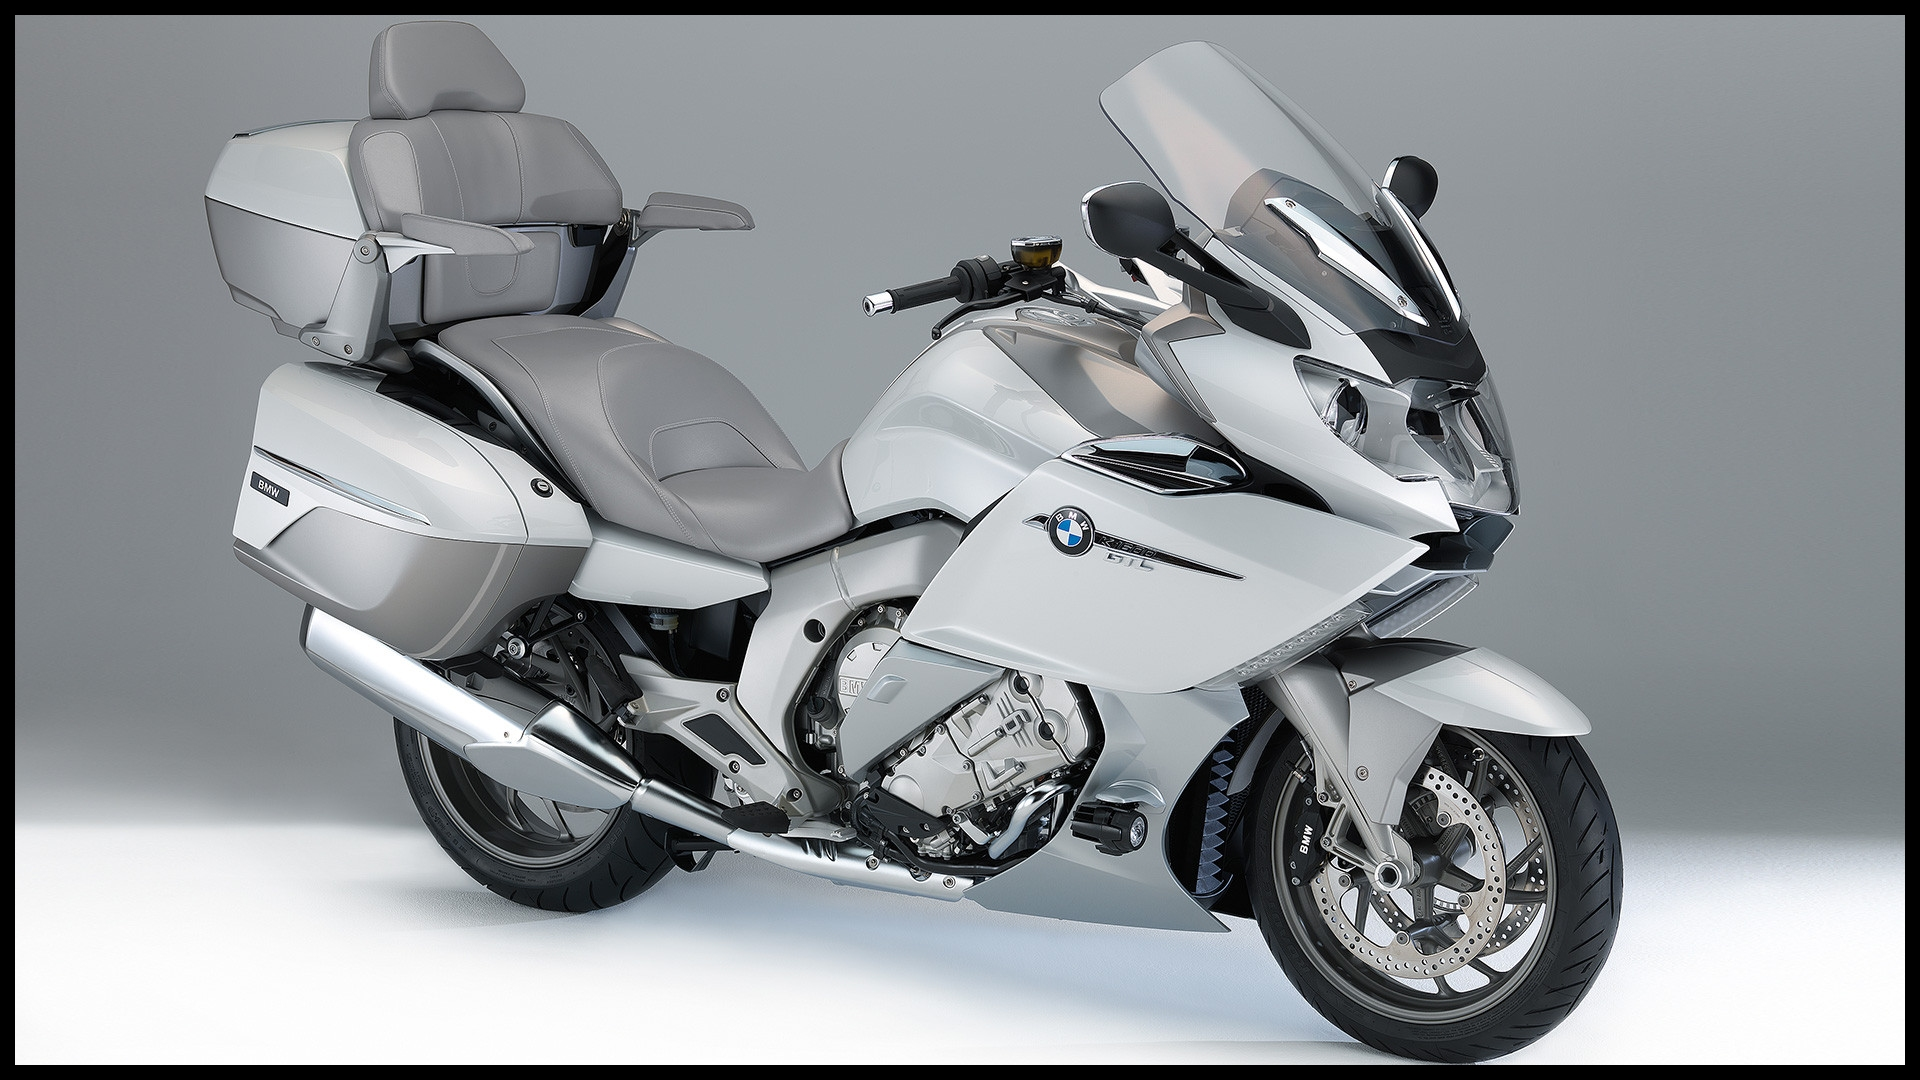 Bmw K 1600 Gt for Sale Lovely Bmw K 1600 Gtl 2017 Pro Bike S Overdrive